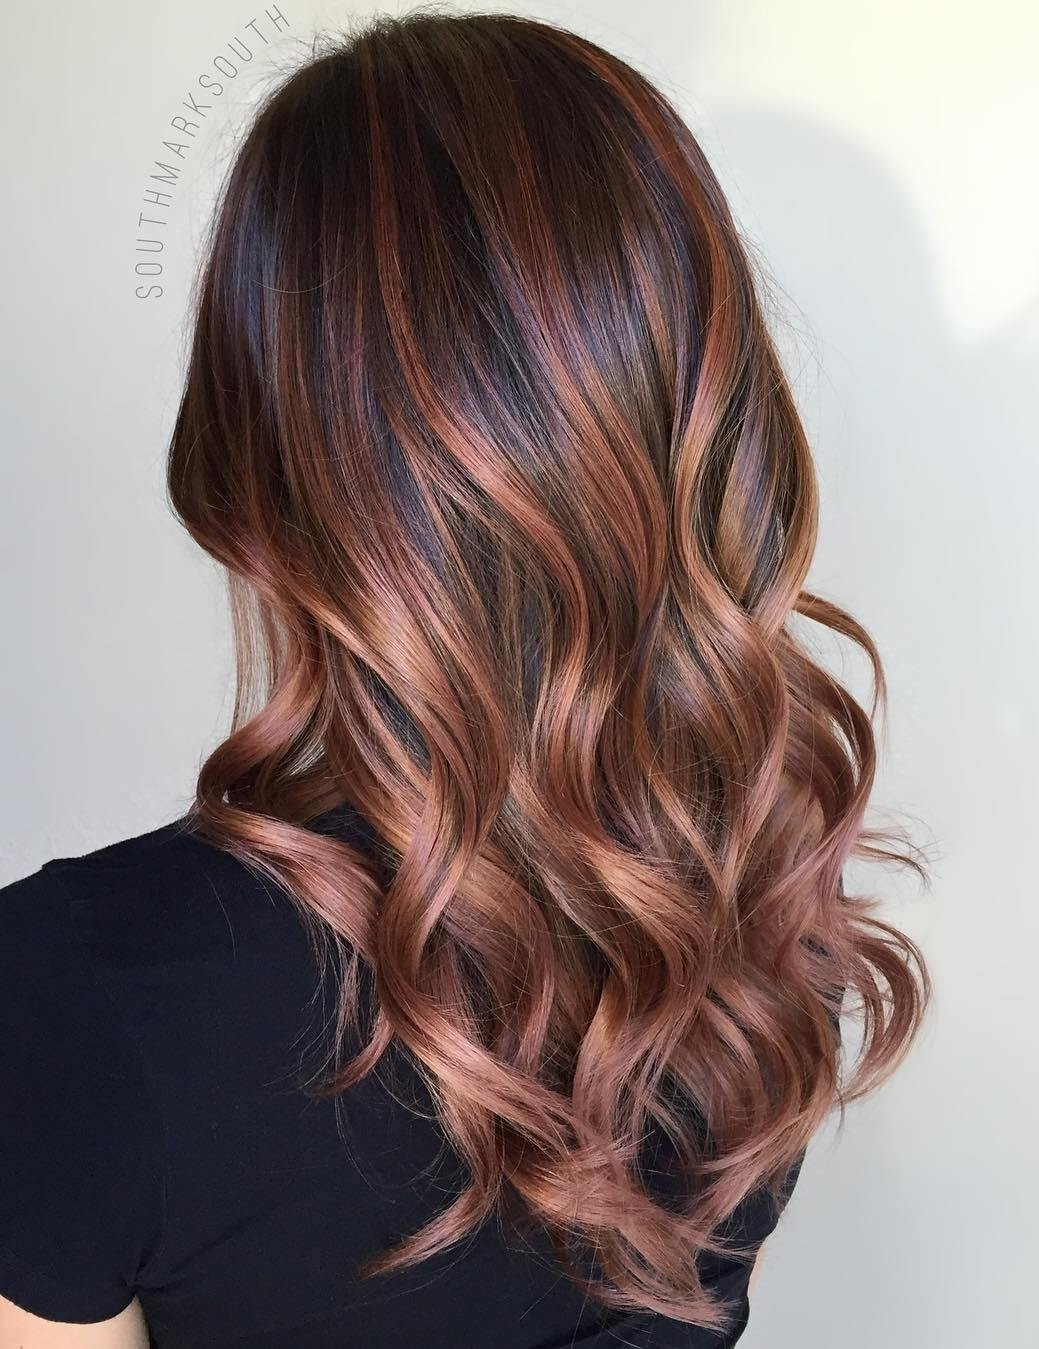 10 Fabulous Chocolate Brown Hair Color Ideas stunning flattering balayage hair color ideas u highlights image for 2020